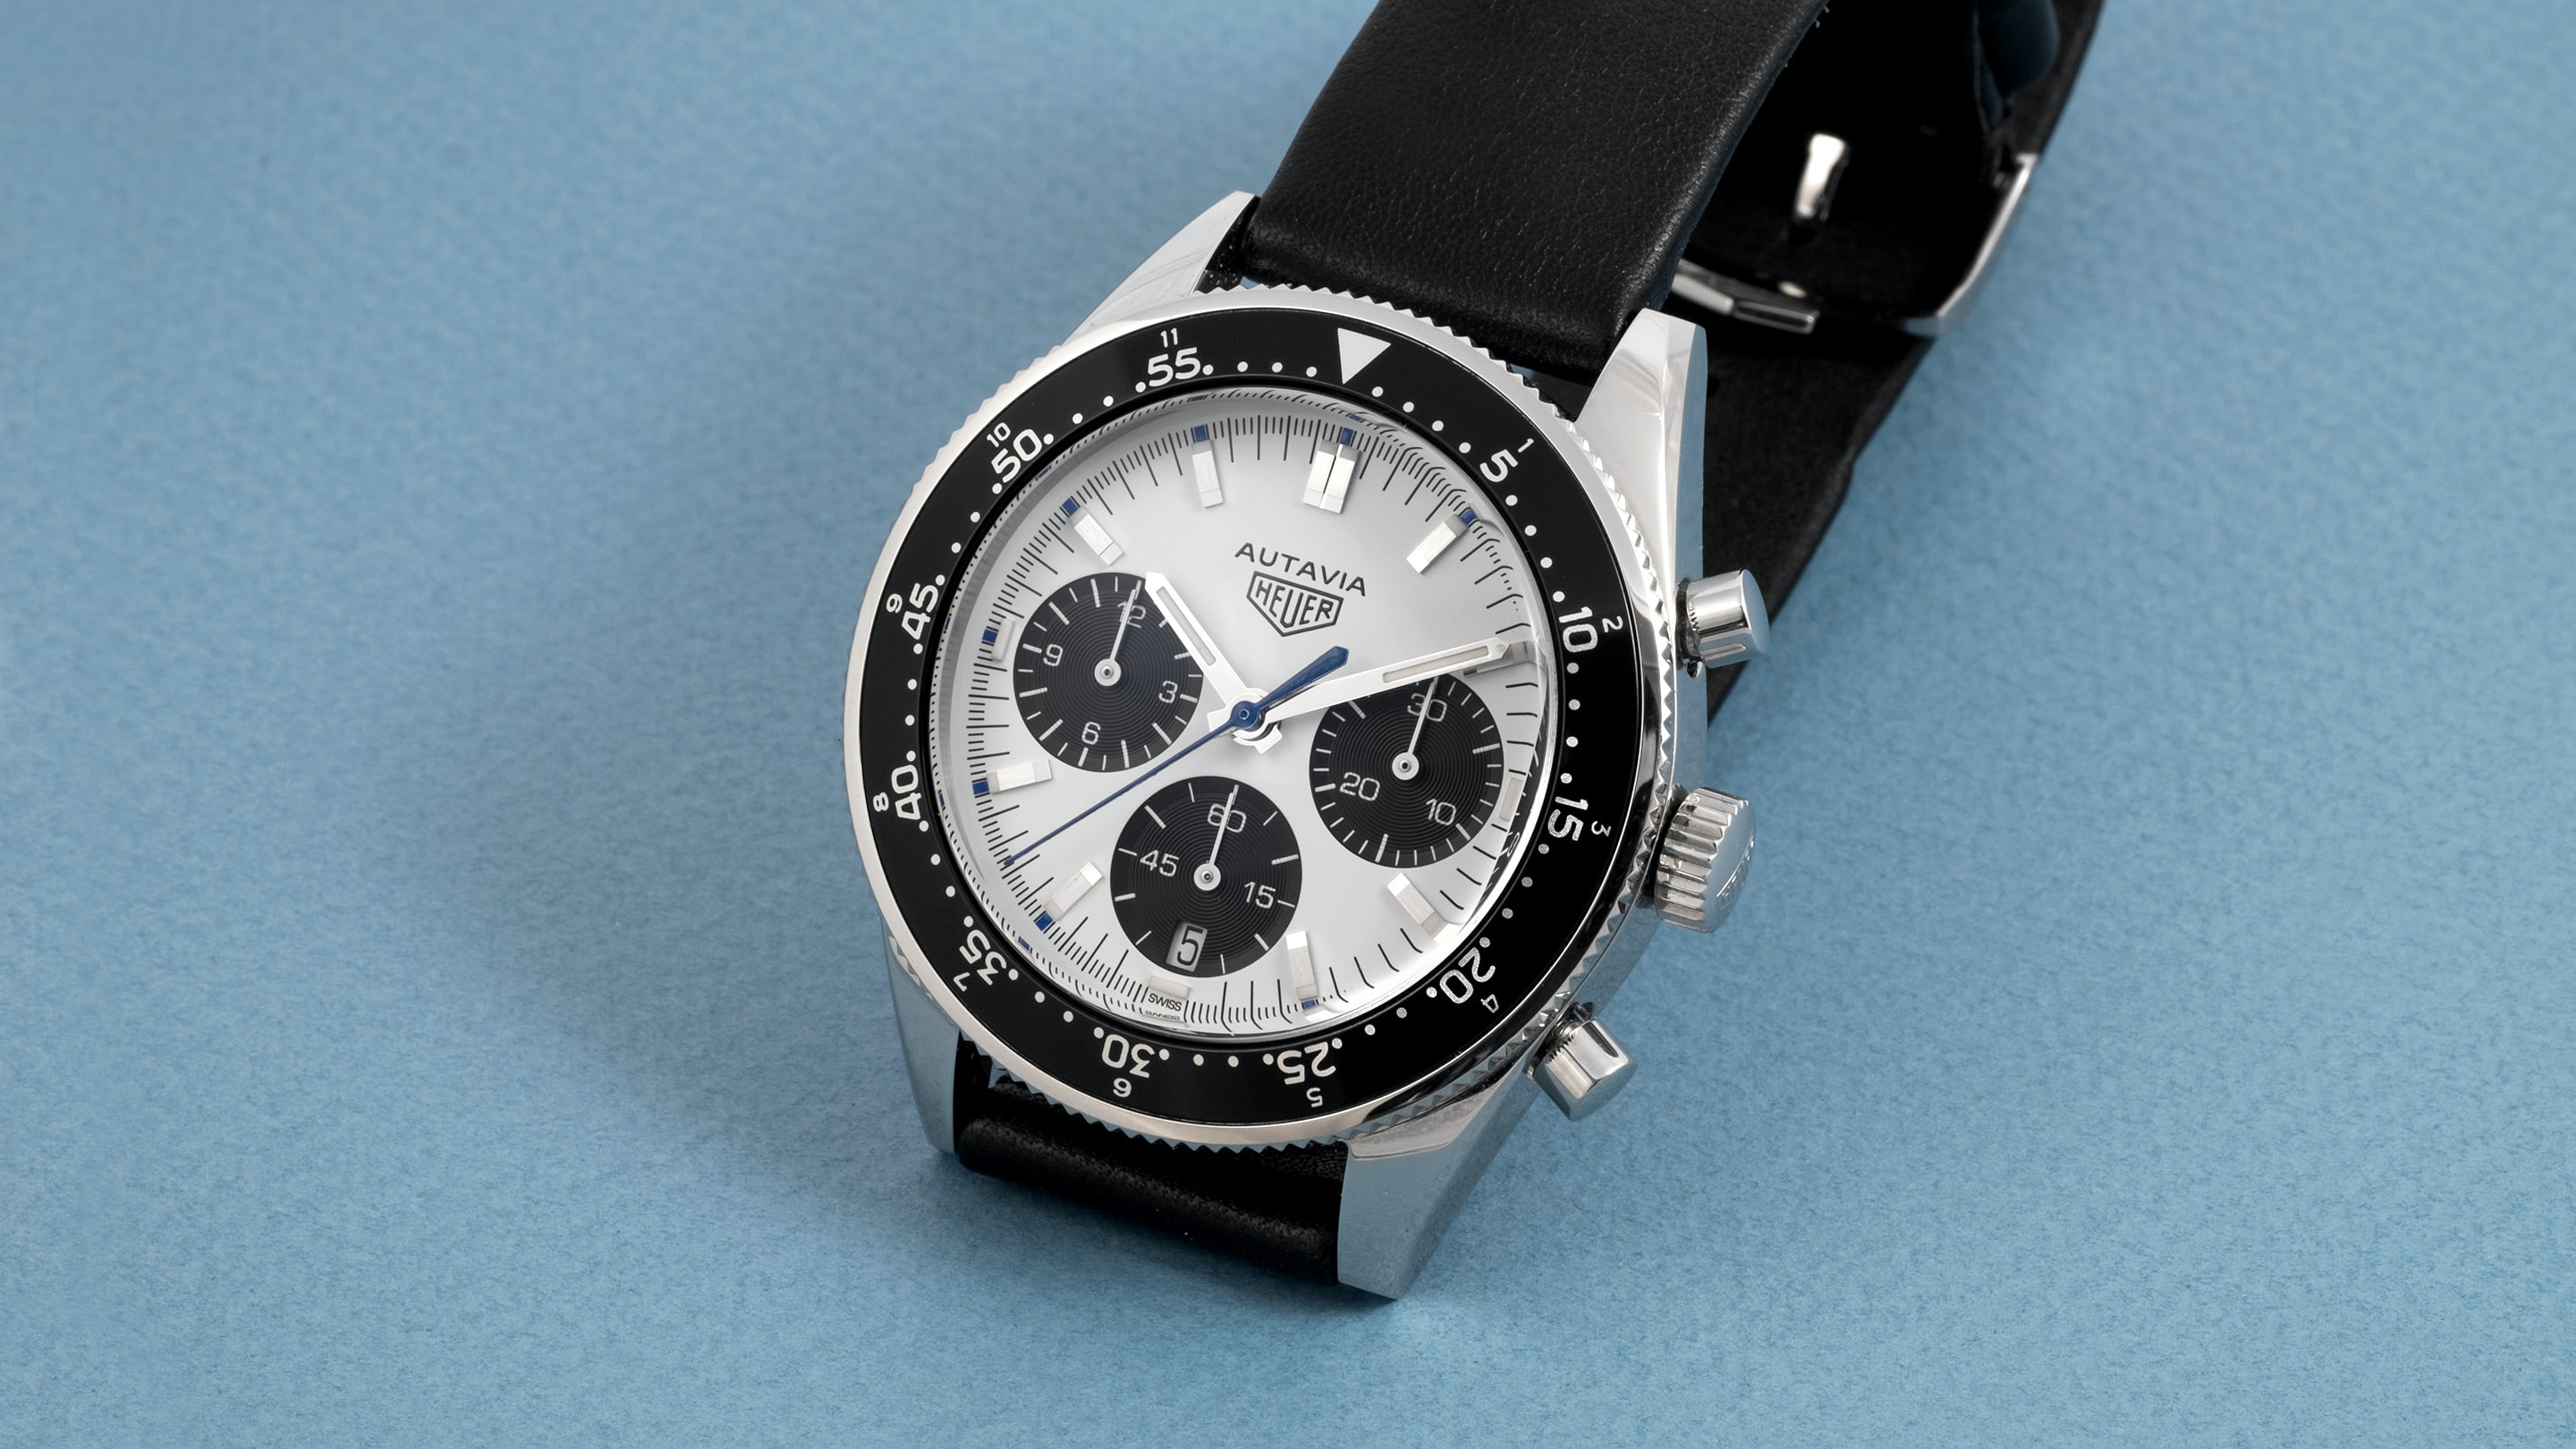 Introducing: The TAG Heuer Autavia Jo Siffert Collector's Edition By Calibre 11 (Exclusive Live Pics & Pricing)